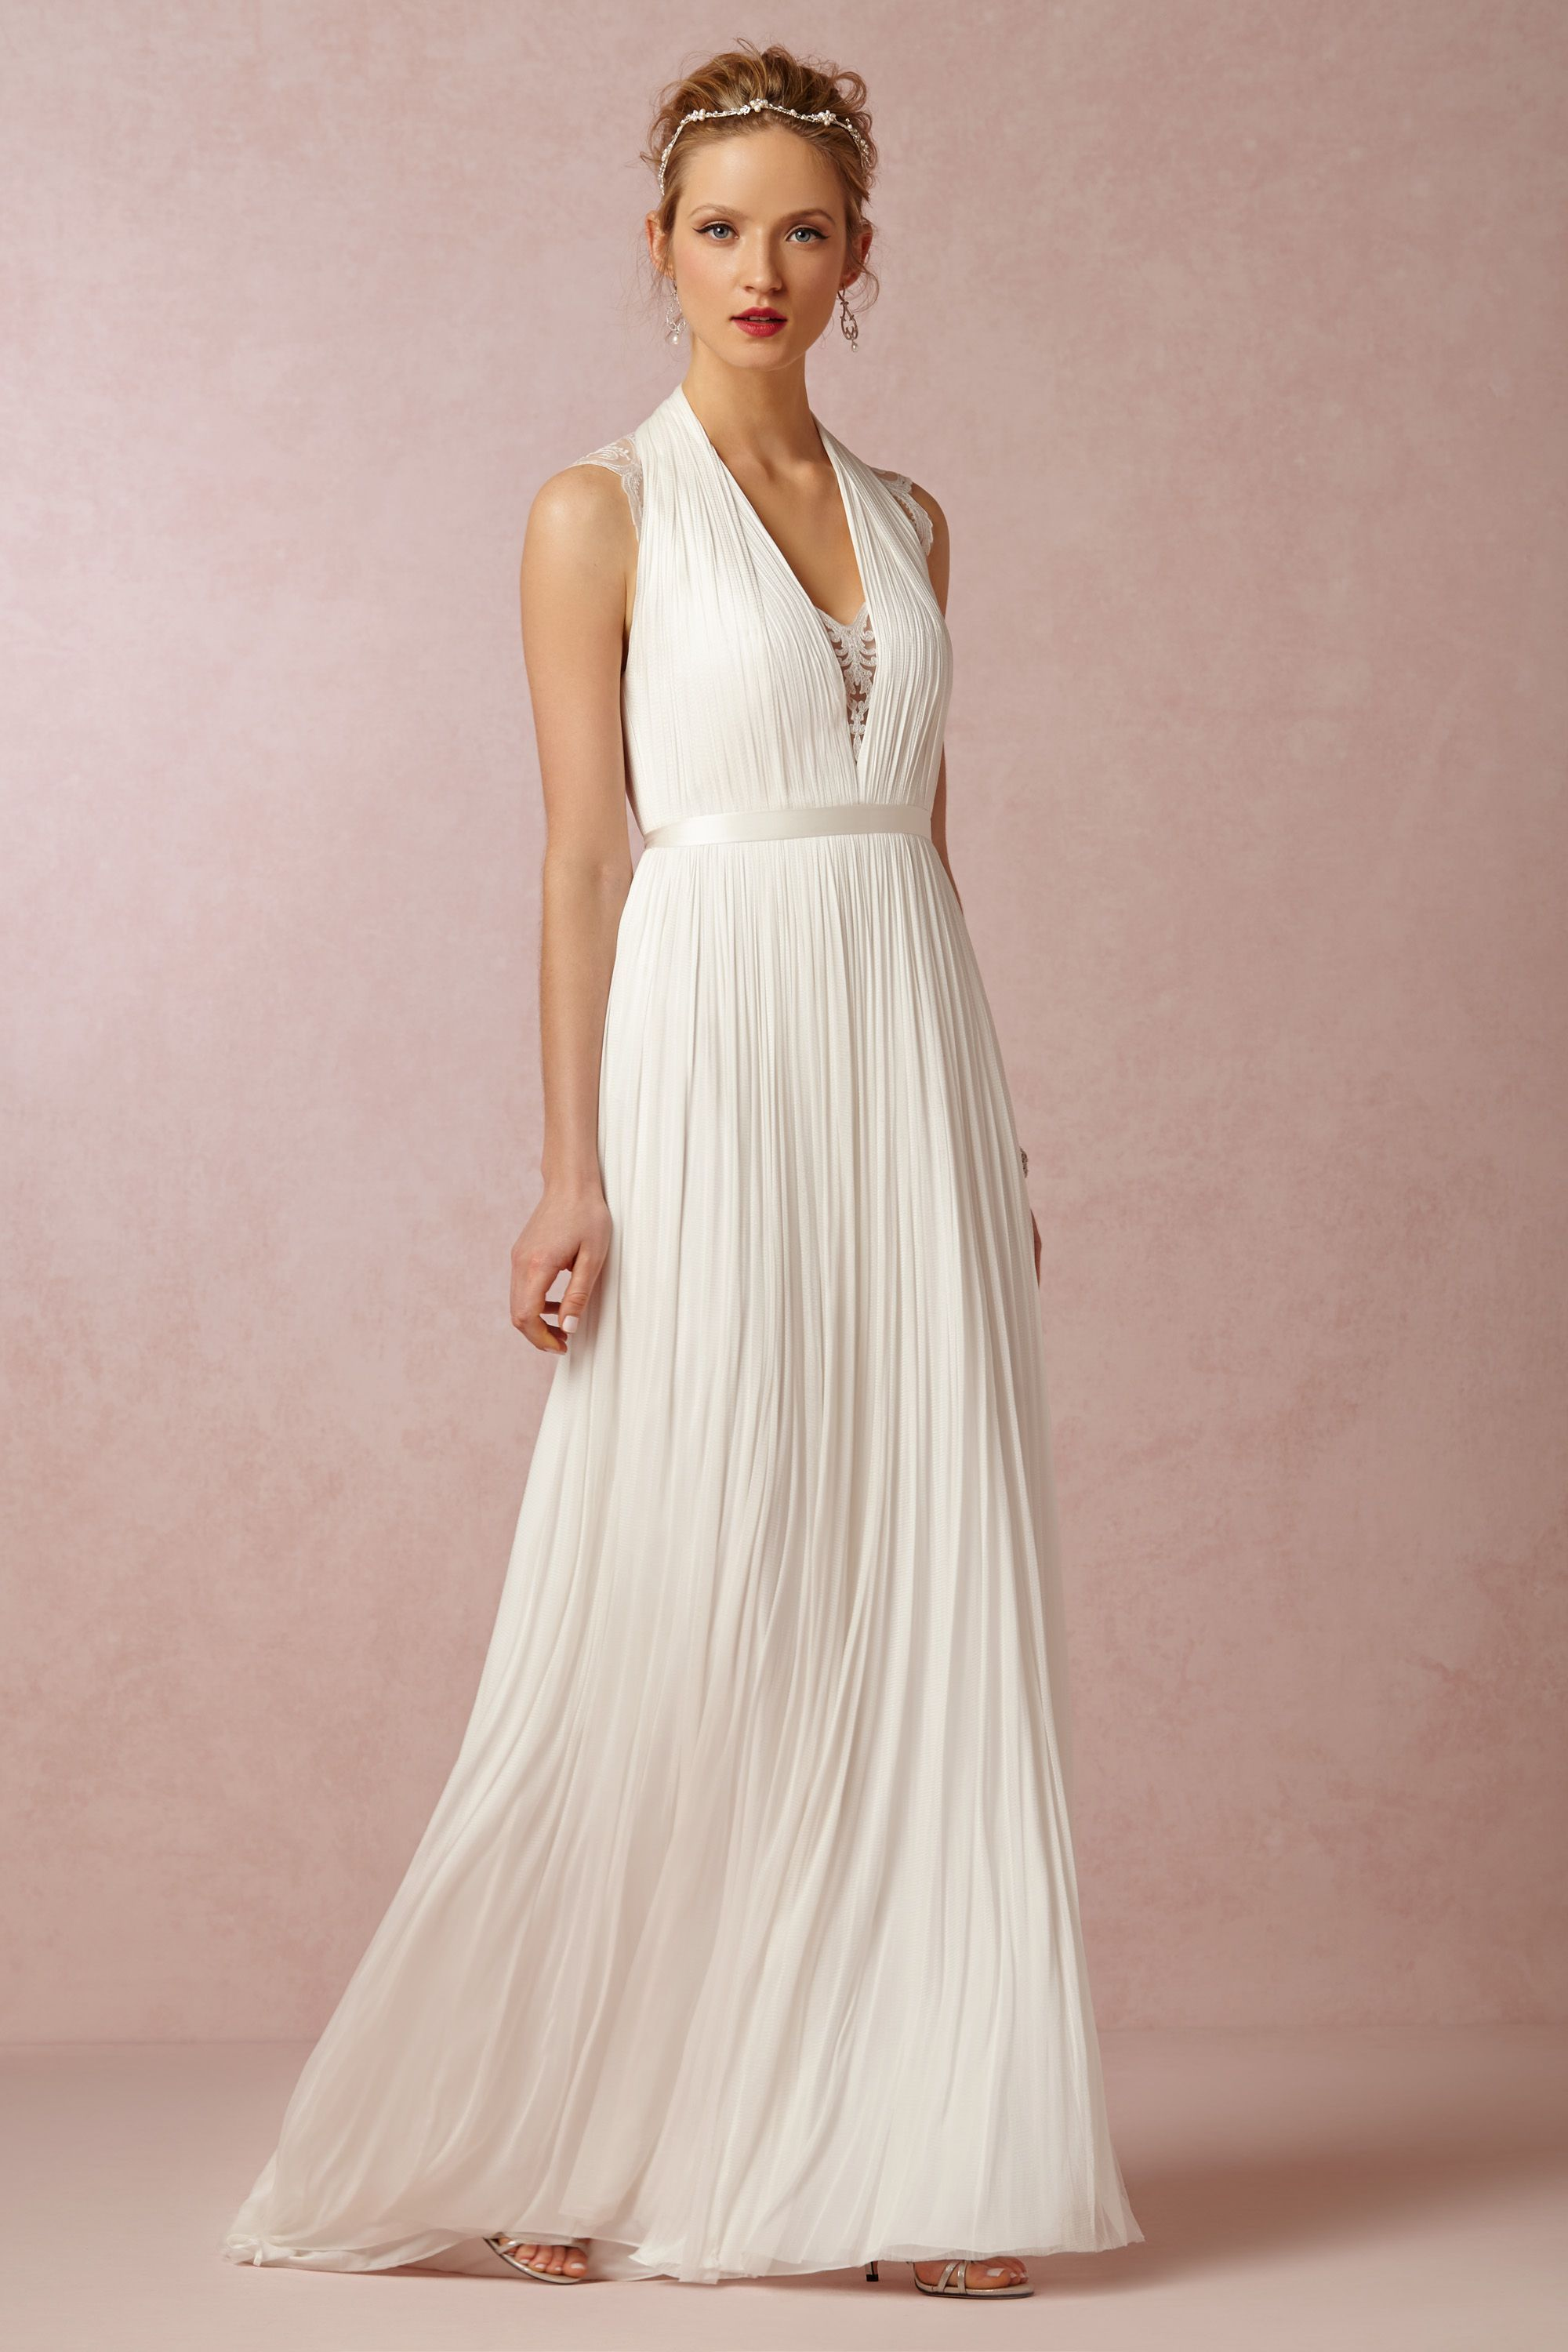 Wing Gown from @BHLDN | The dress. | Pinterest